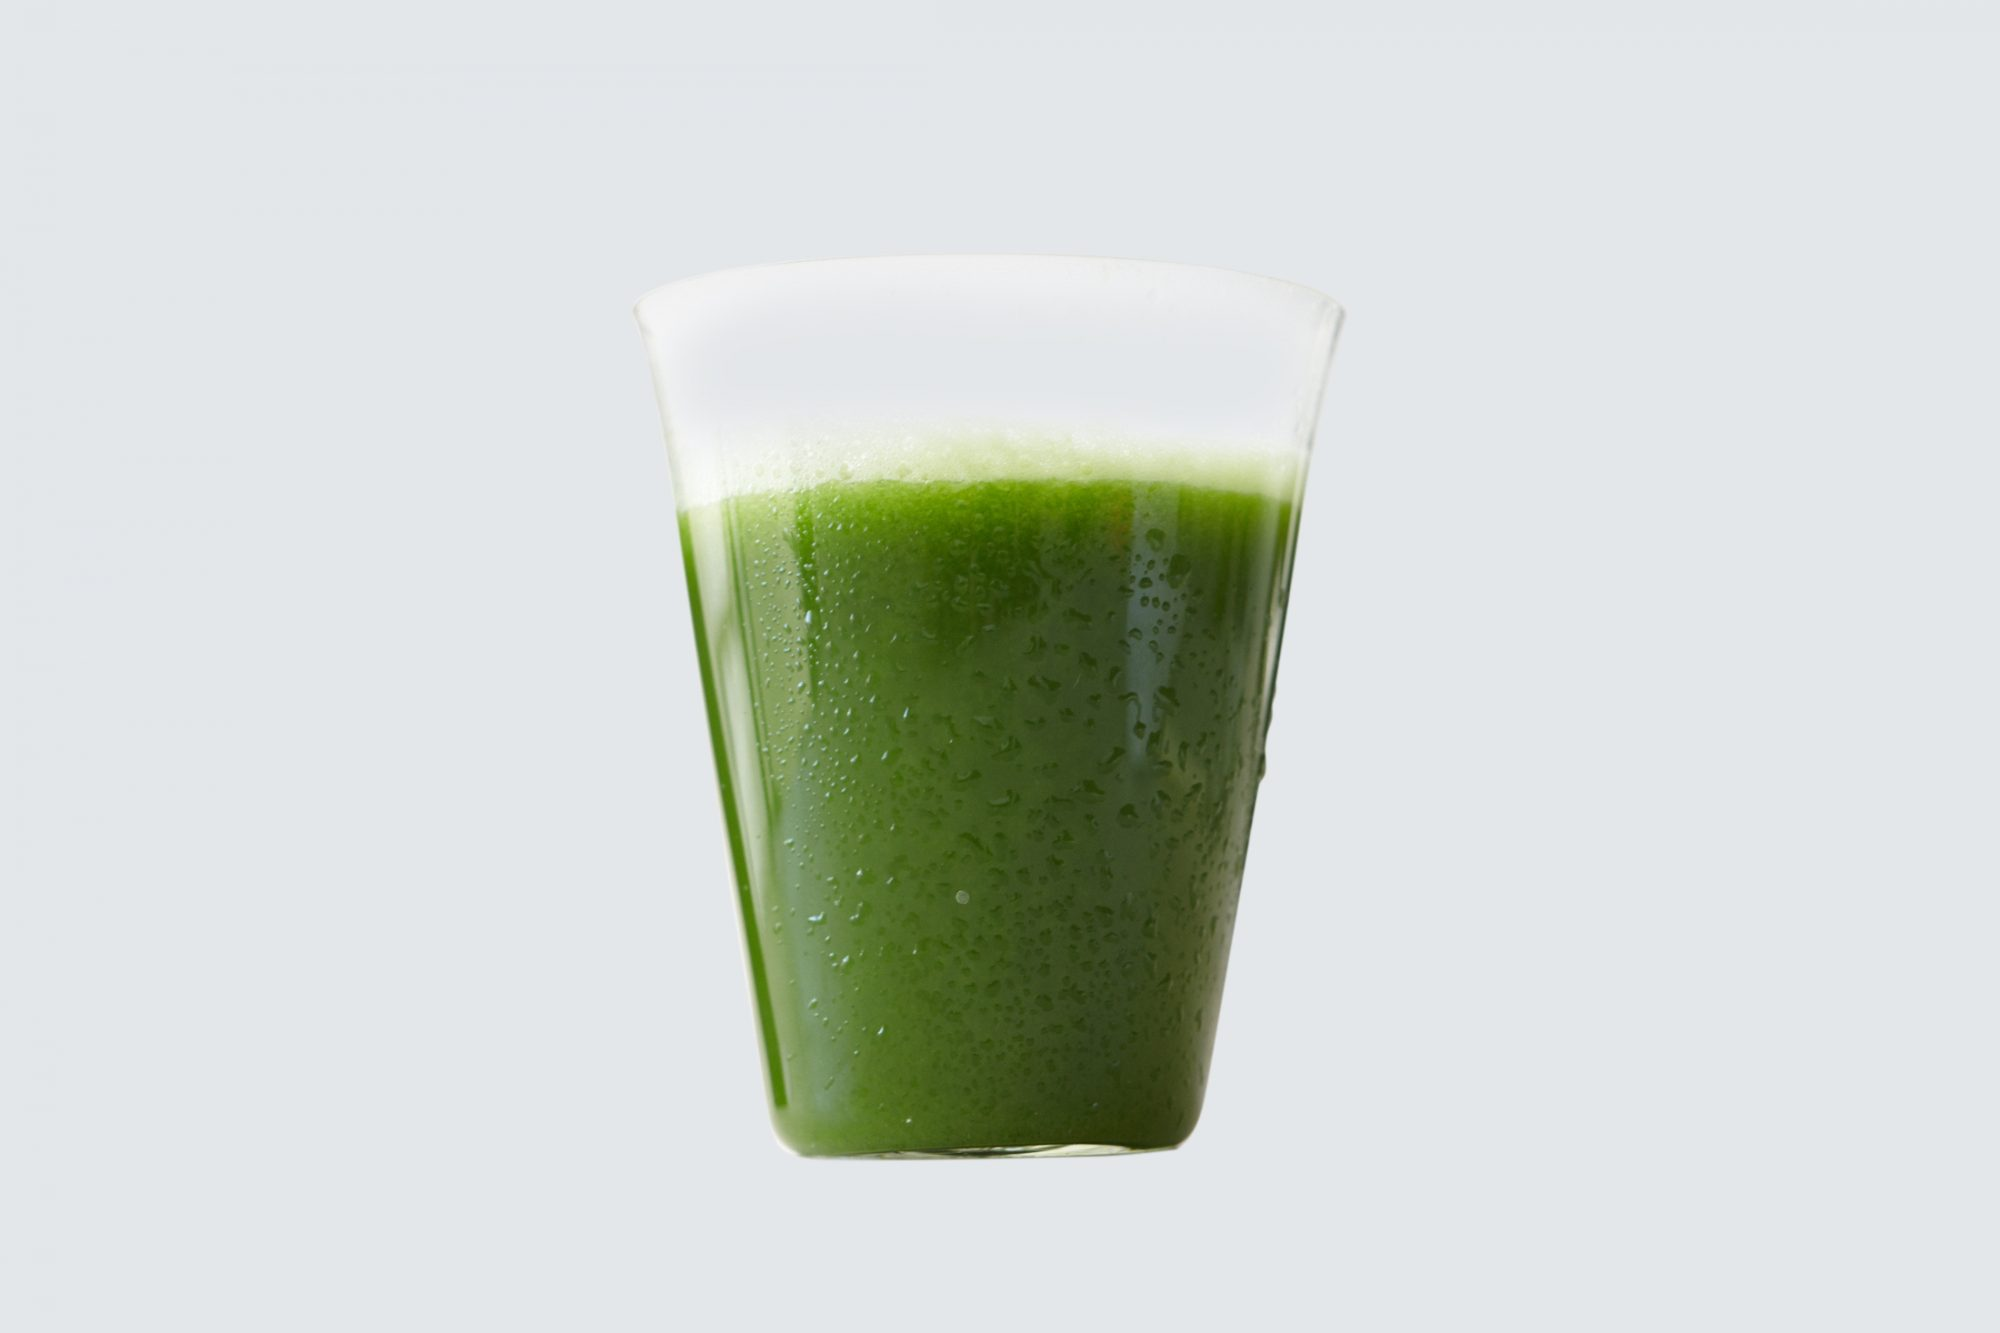 marthas favorite green juice